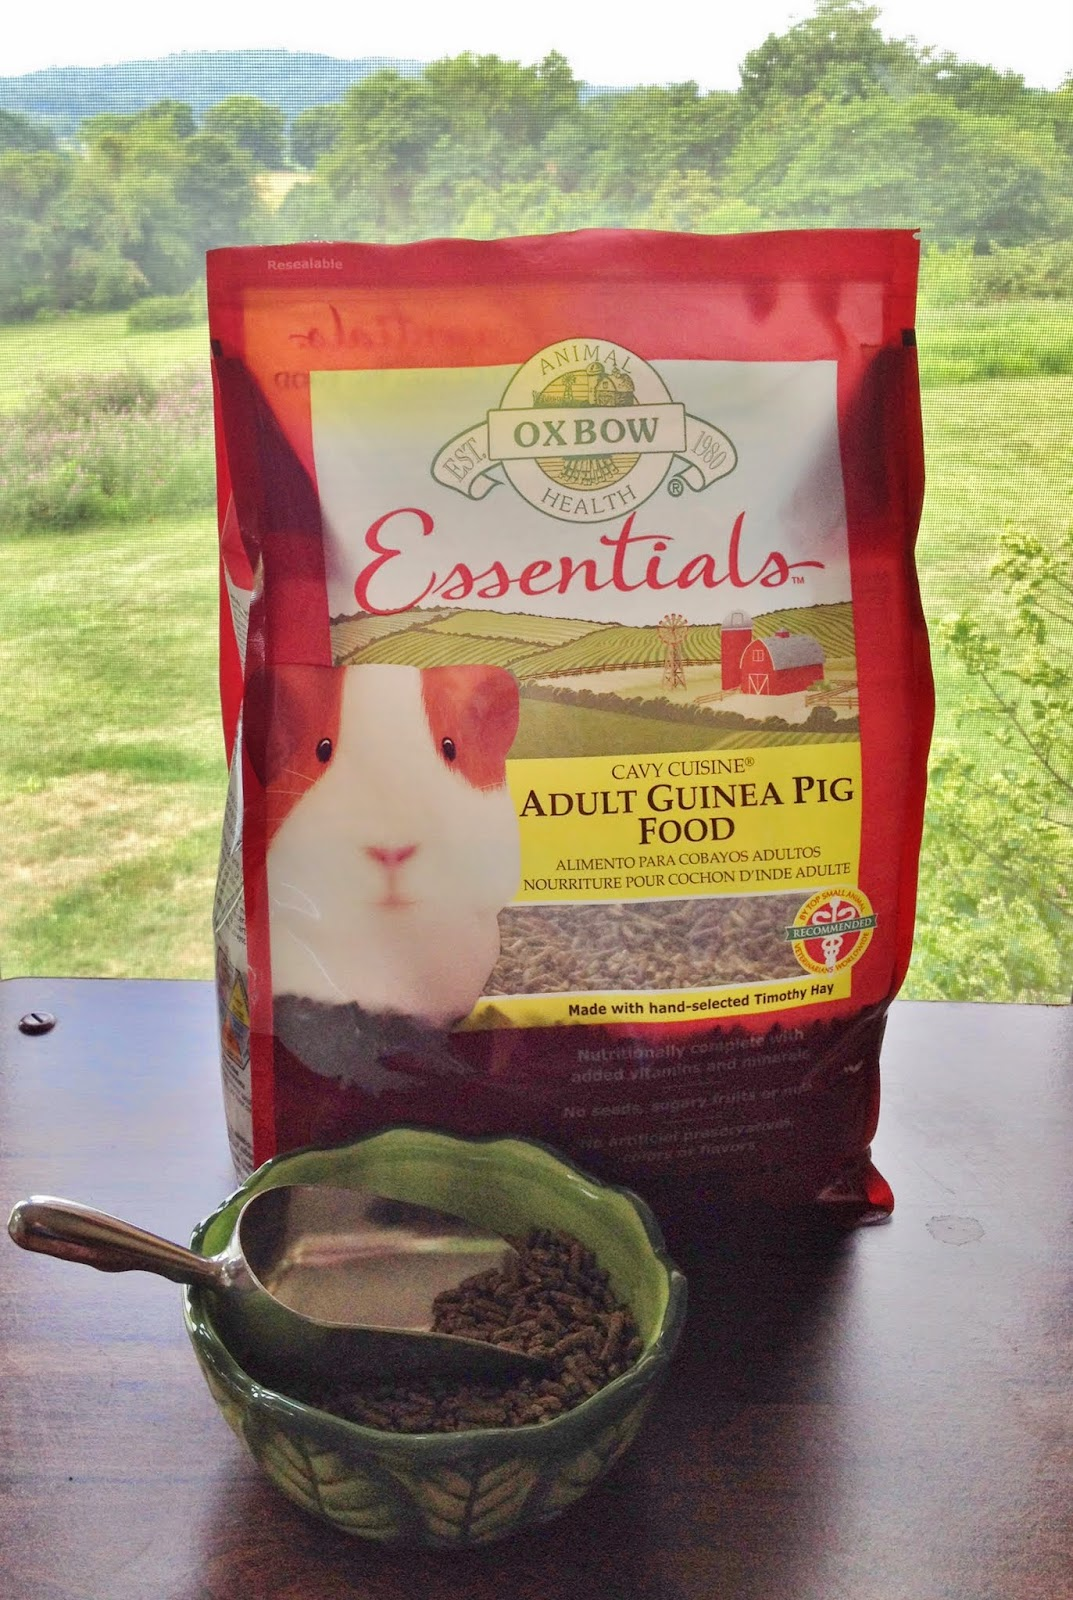 Oxbow Essentials Adult Guinea Pig food in a clean, dry bowl.